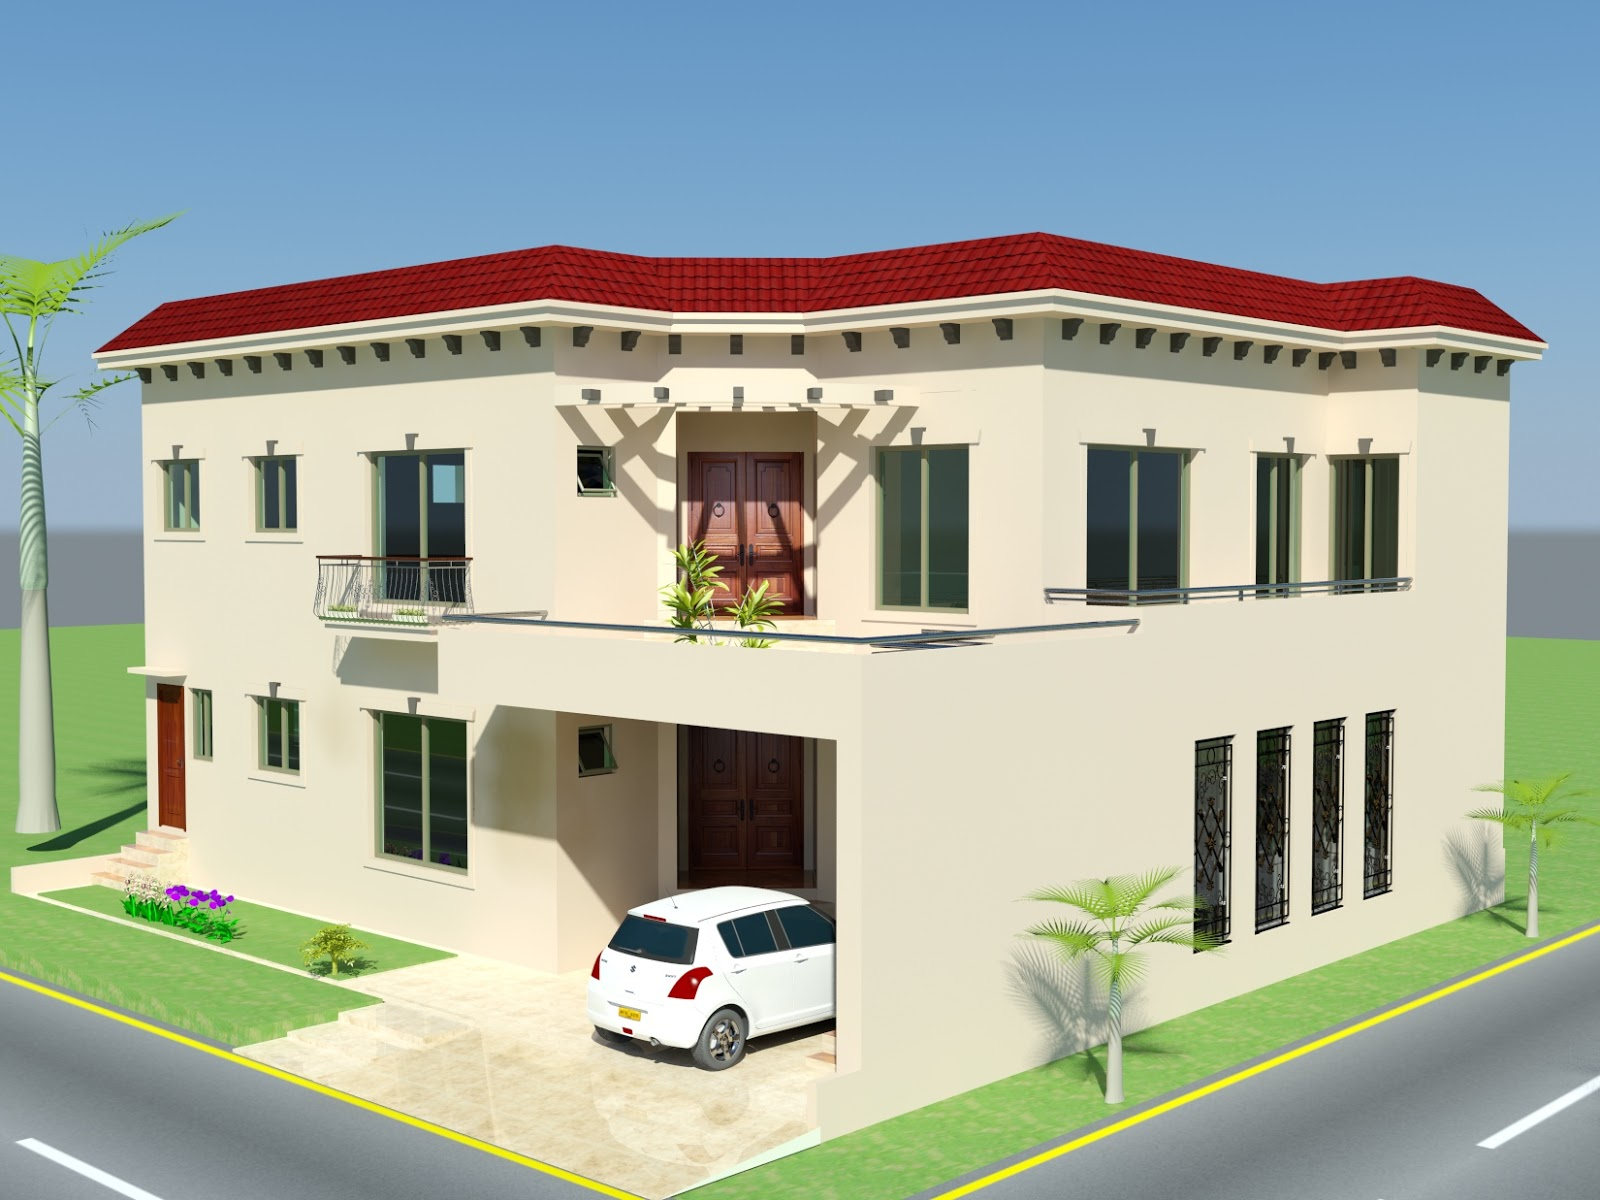 House Design In Pakistan Ideasidea